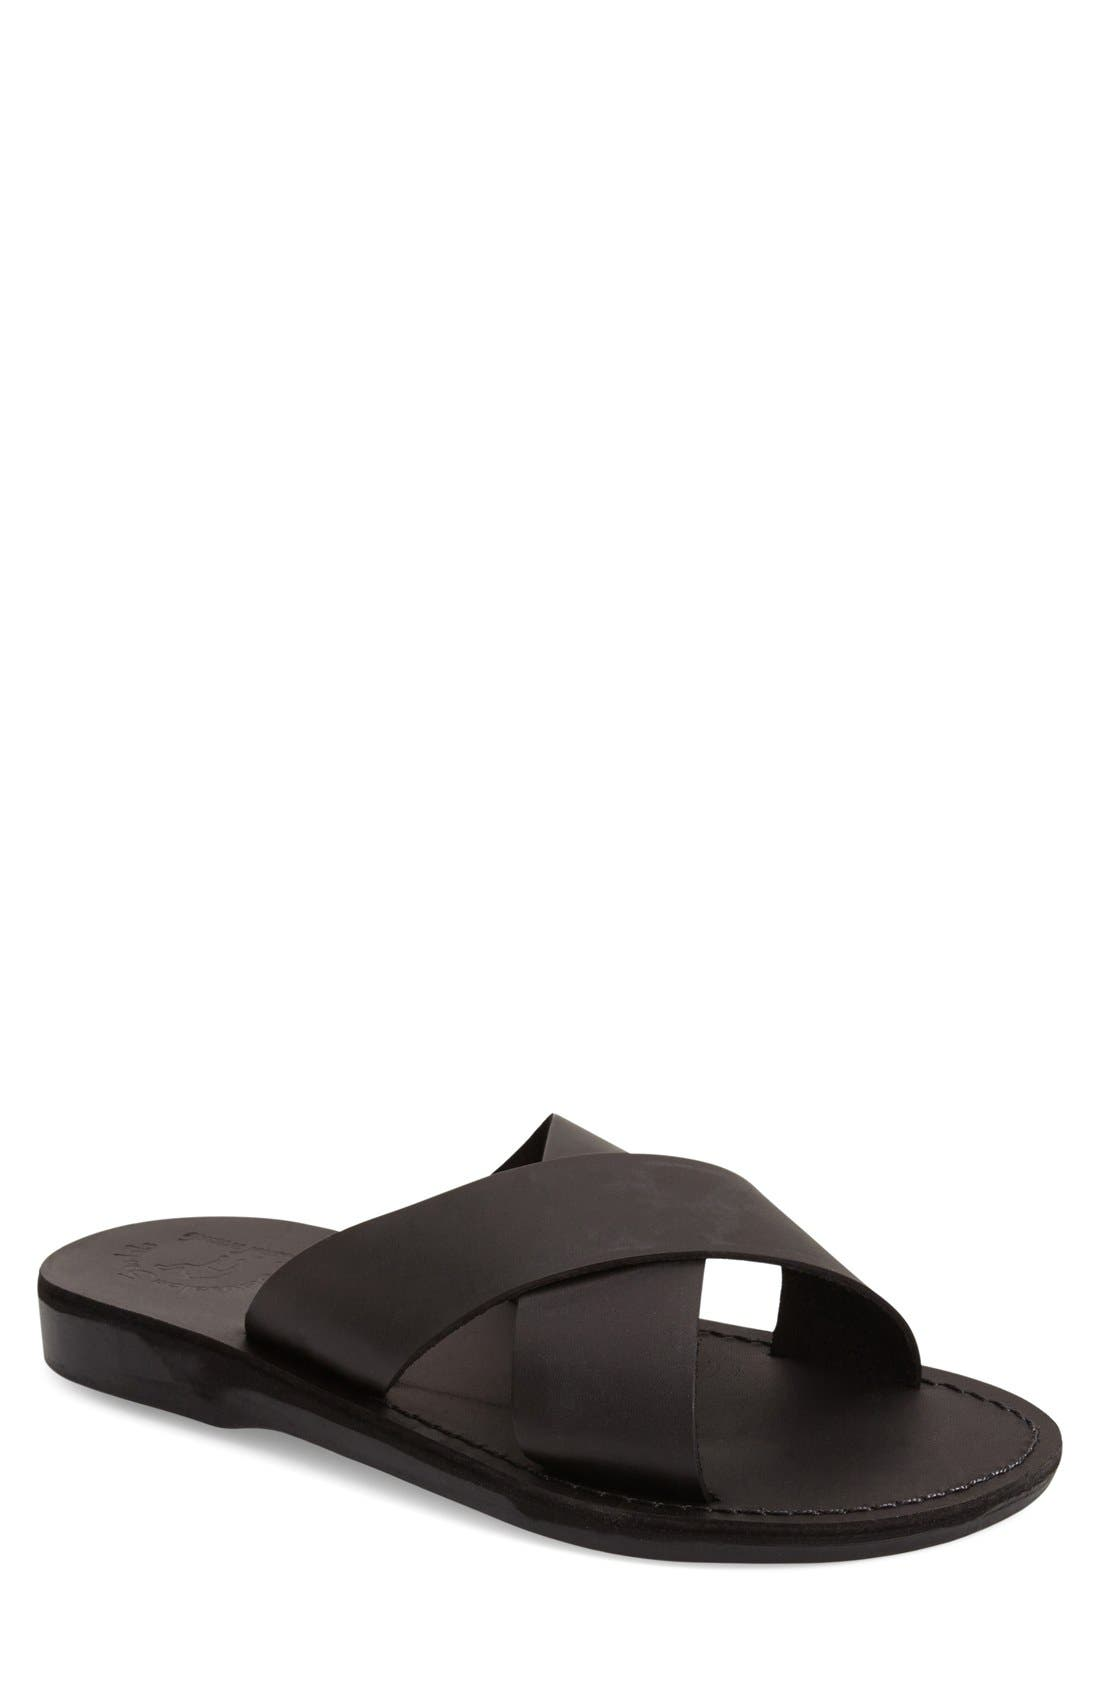 Main Image - Jerusalem Sandals 'Elan' Slide Sandal (Men)